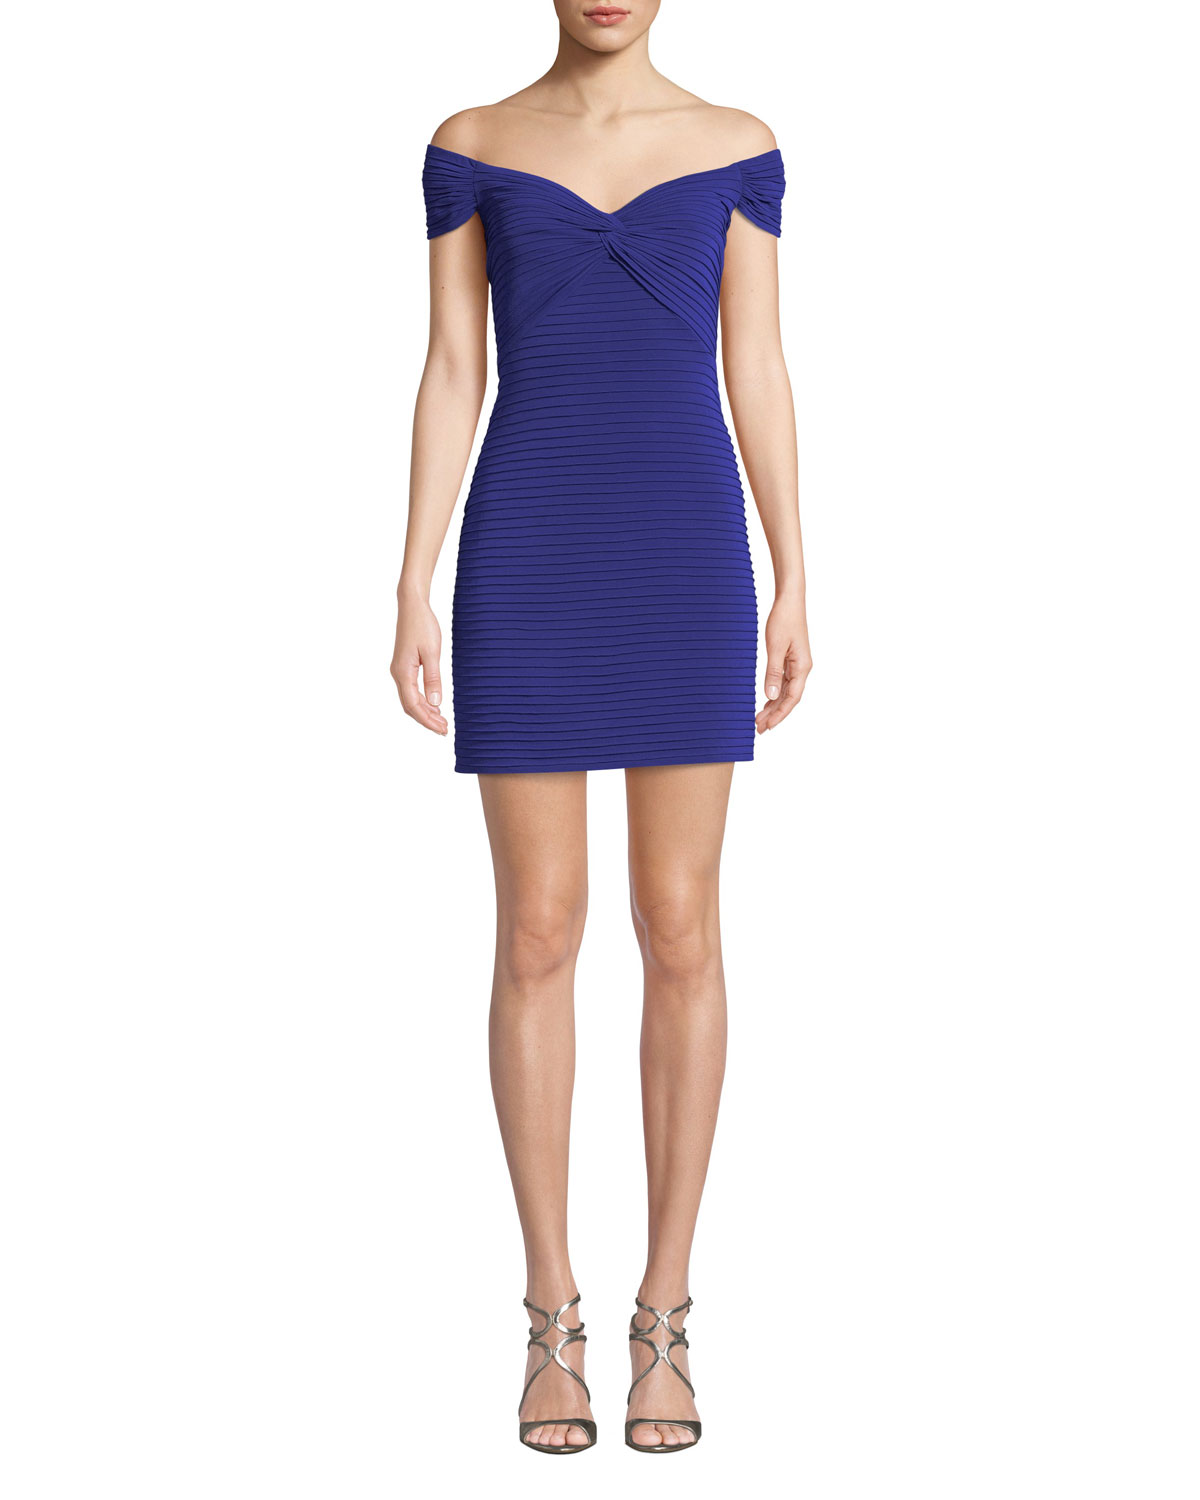 Tadashi Shoji Dresses OFF-THE-SHOULDER PINTUCK COCKTAIL DRESS